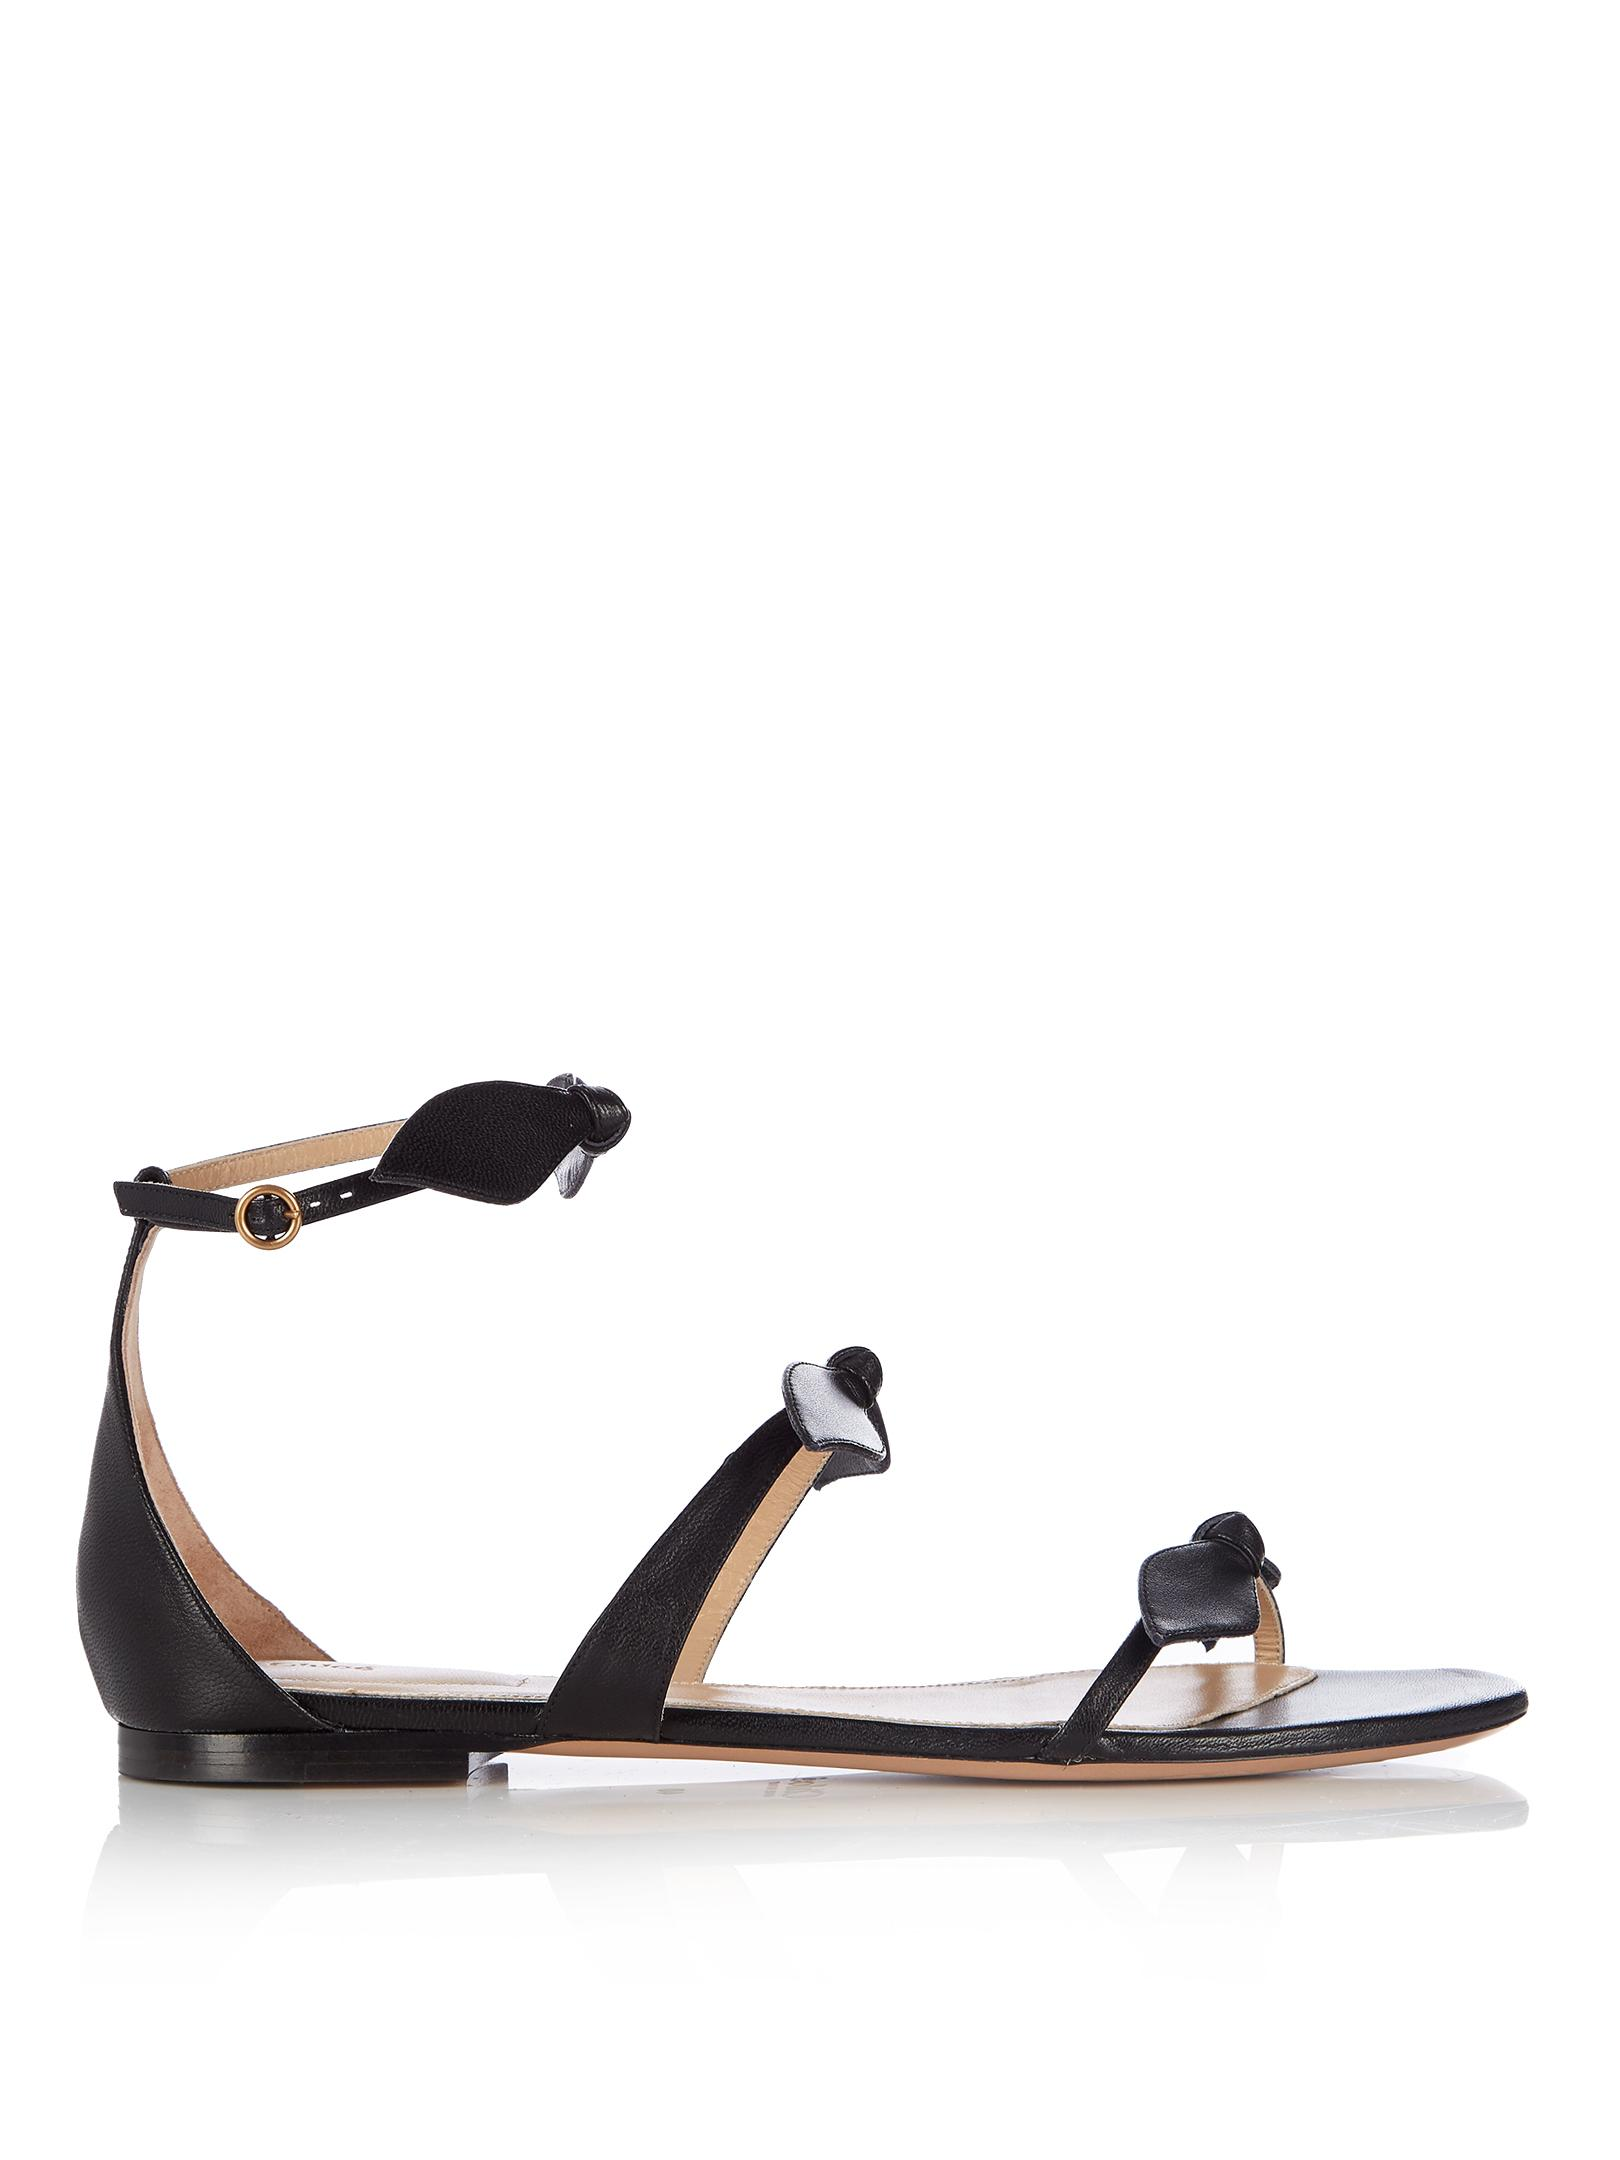 Chlo 233 Mike Bow Front Leather Sandals In Black Lyst